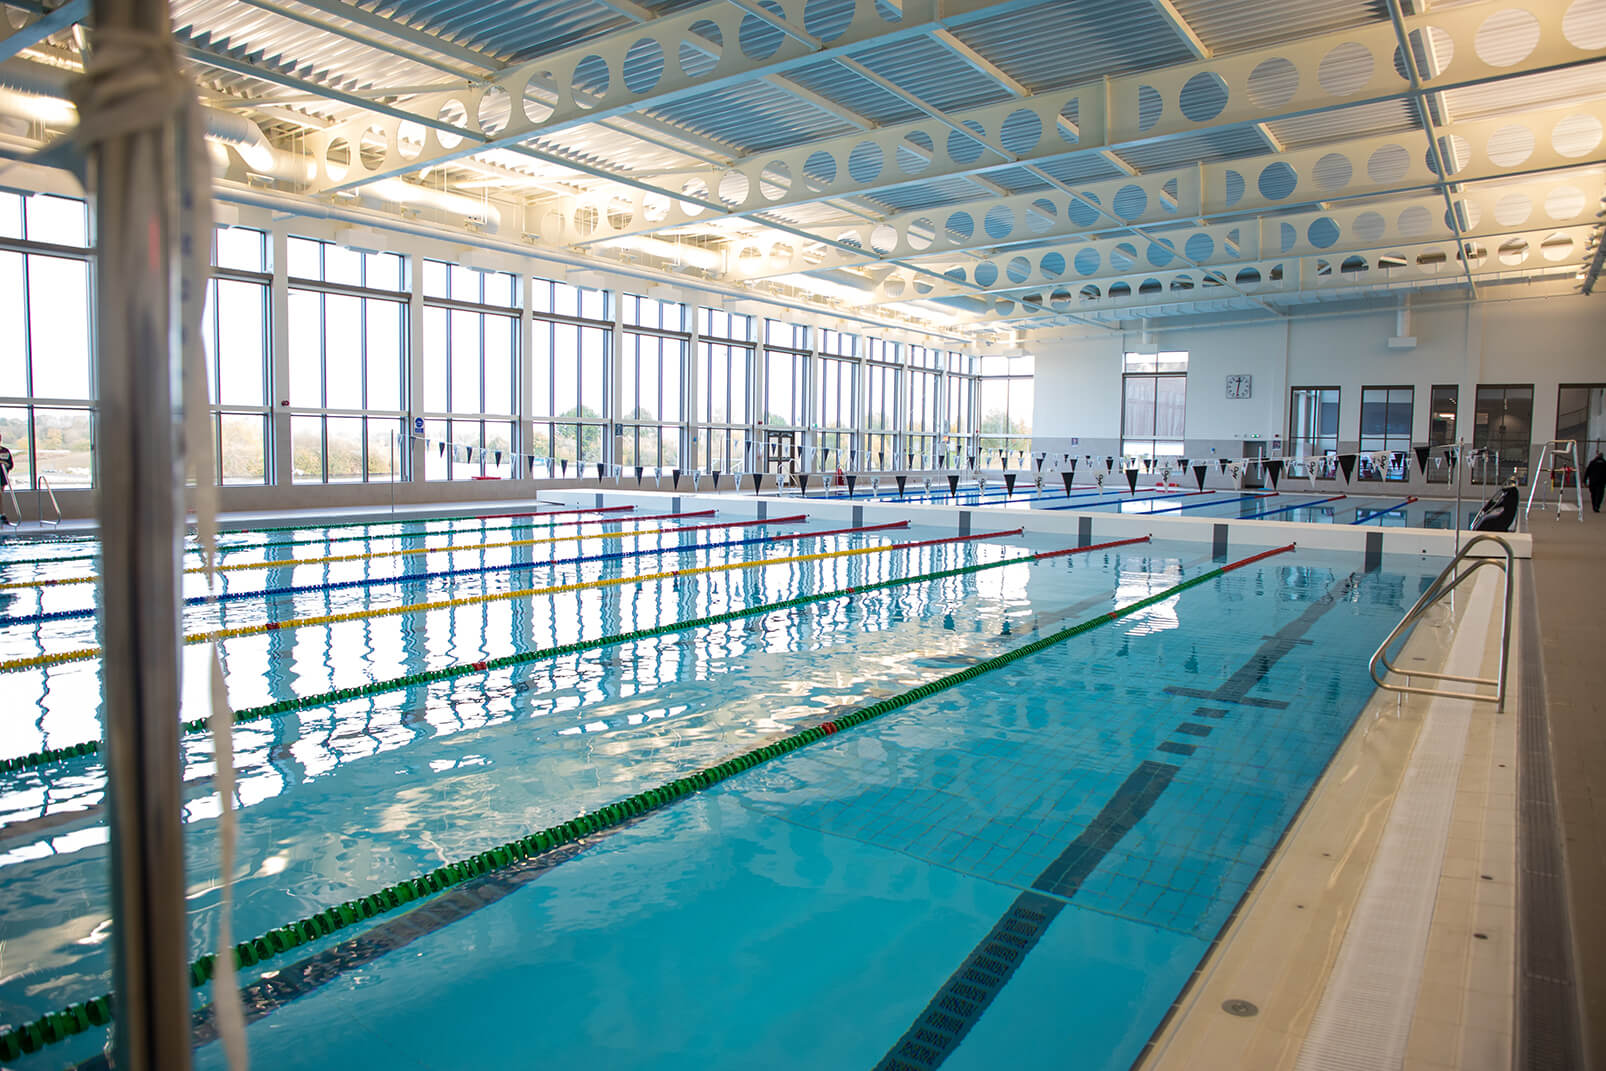 South Lake Leisure Centre Craigavon - Tiles by Carlanto